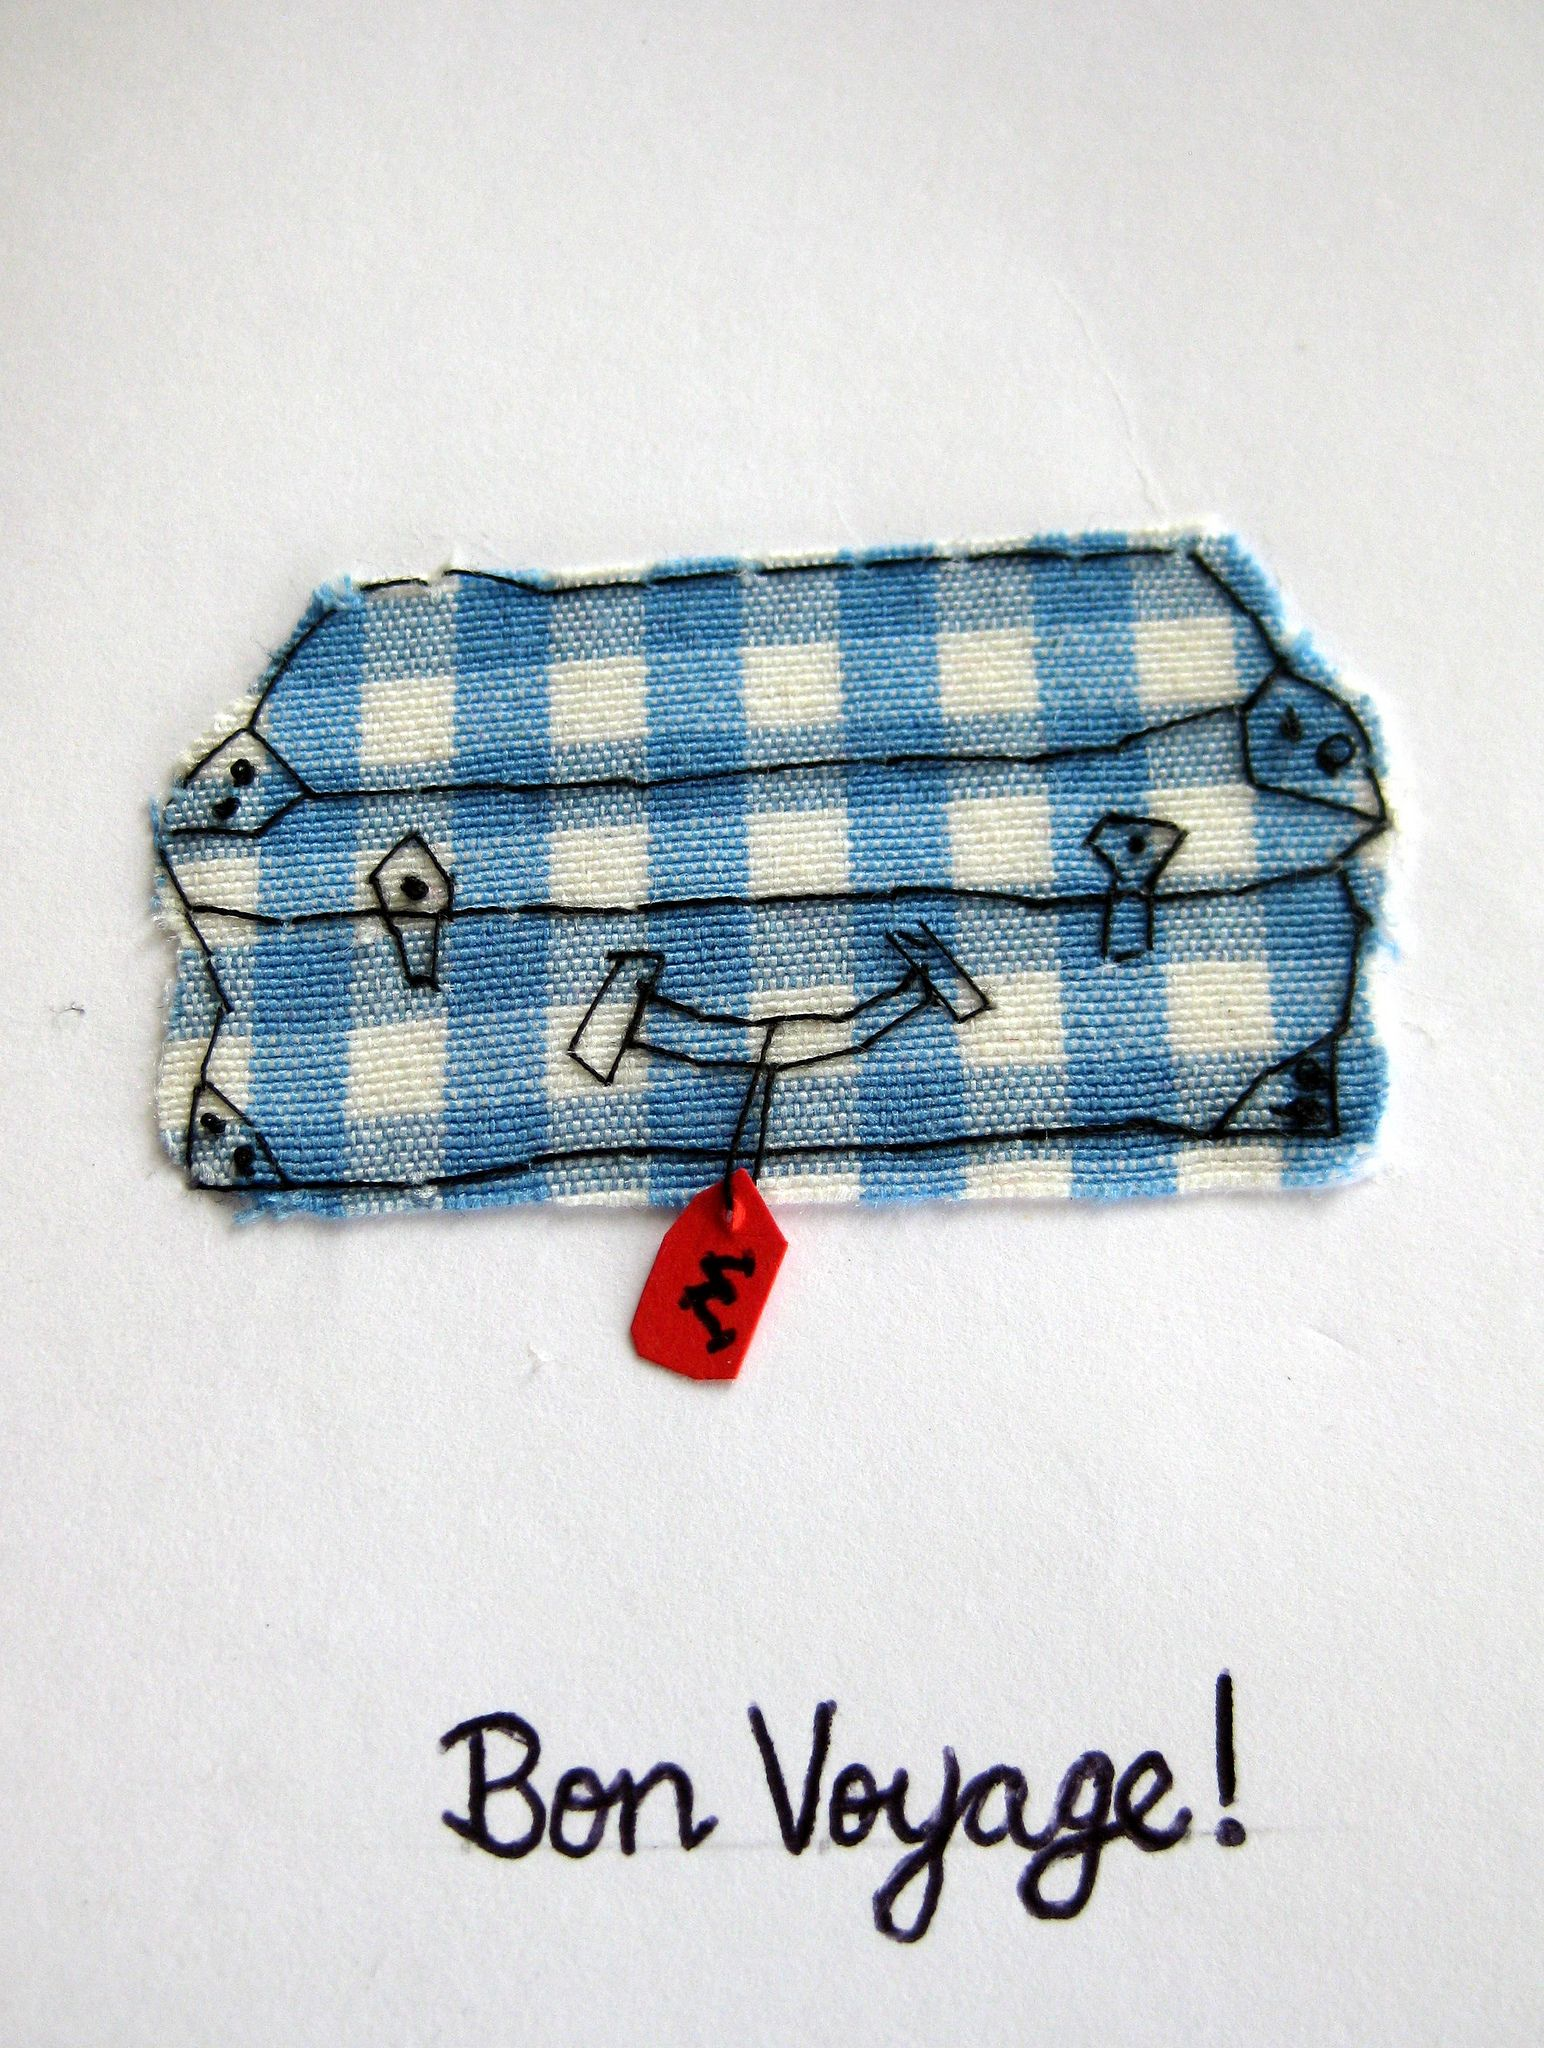 https://flic.kr/p/eXdWNx | Handsewn Bon Voyage Card | Fabric embroidered on card.  Luggage tag hanging loose.